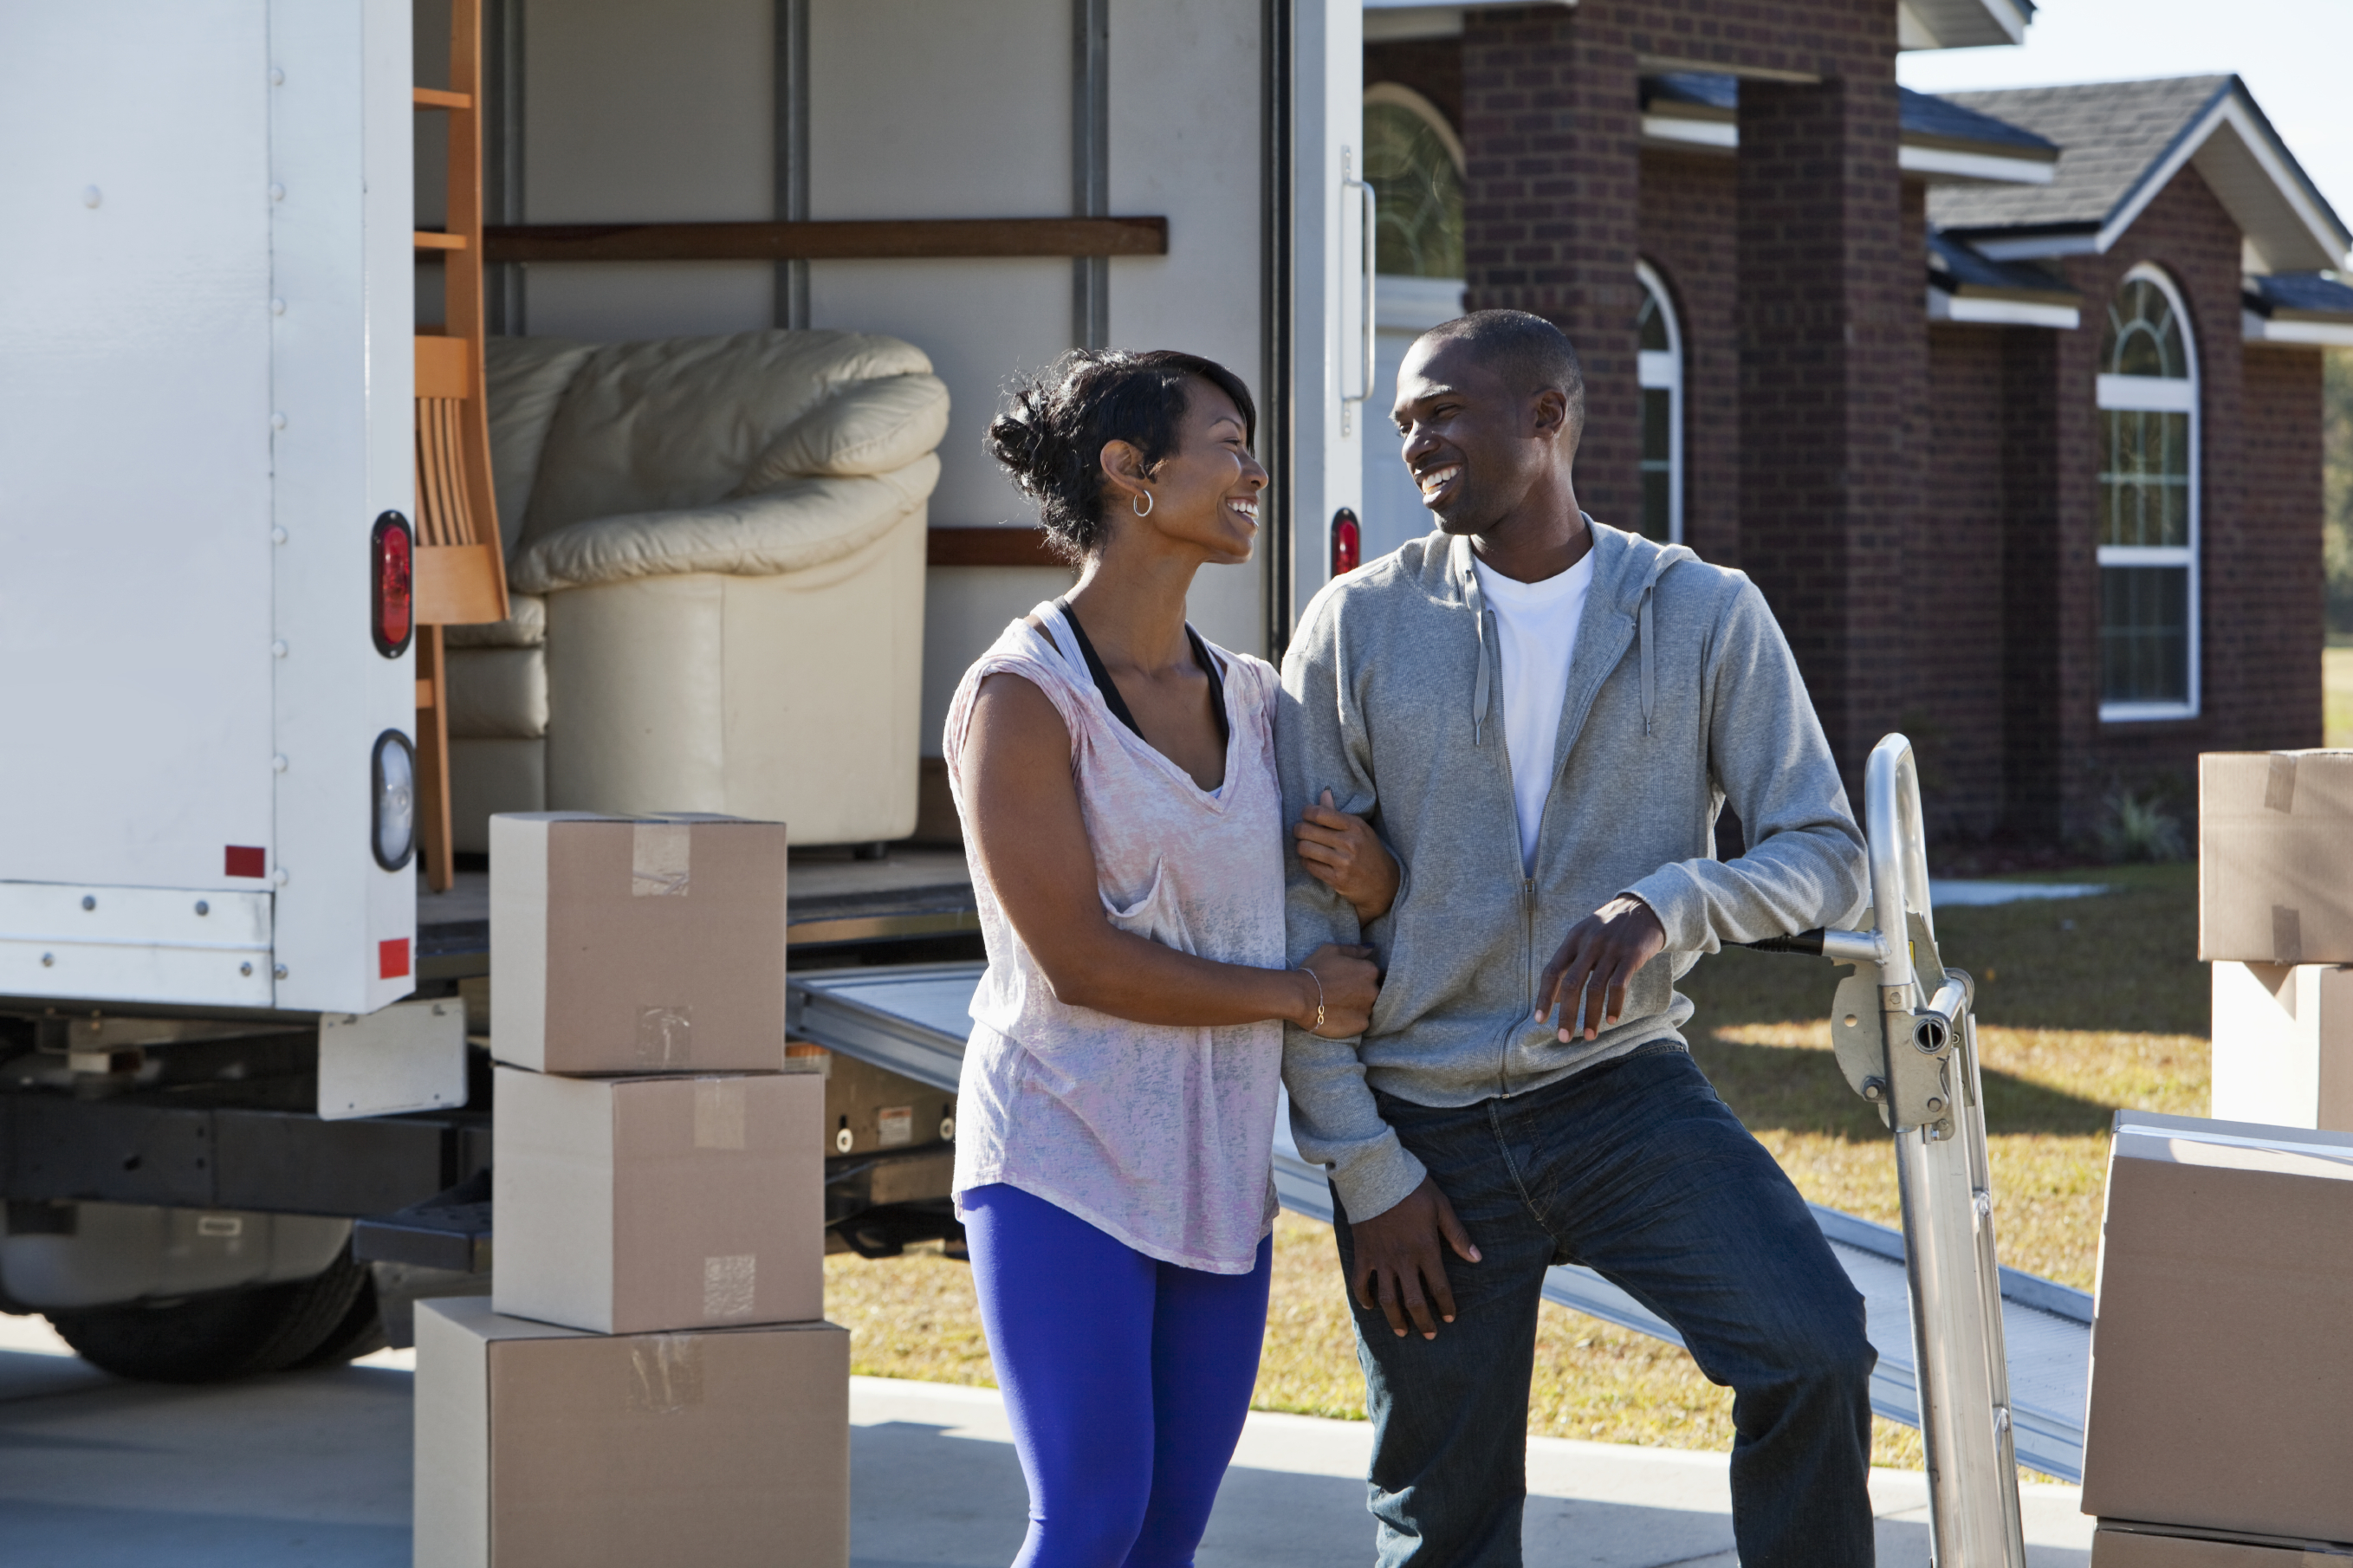 Housecall Trend Unmarried Couples Take The Plunge Into Homeownership